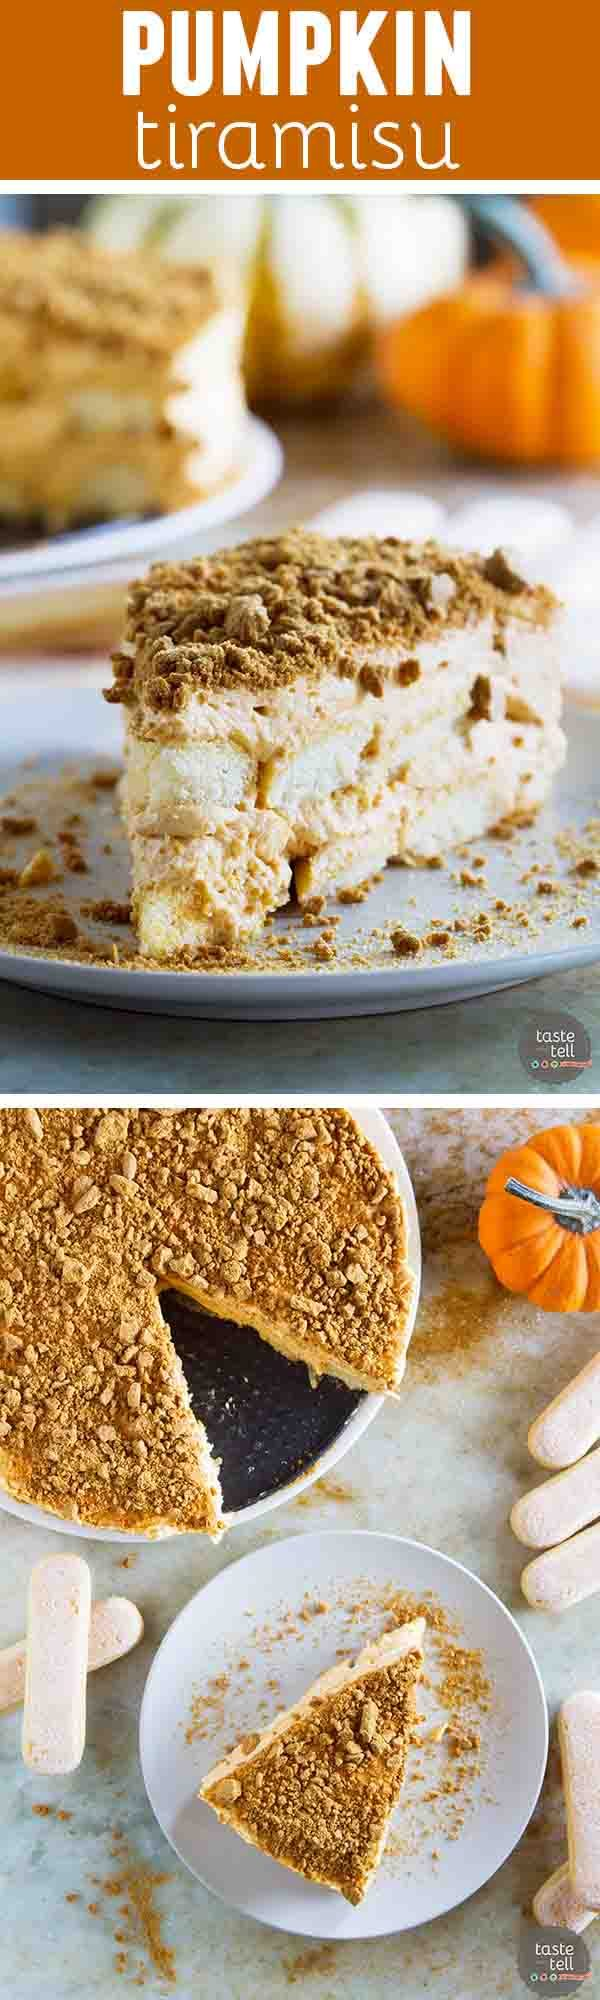 So easy and family friendly, this Pumpkin Tiramisu is a fun way to change up your holiday baking. With pumpkin, apple and gingersnap flavors, you can't go wrong!